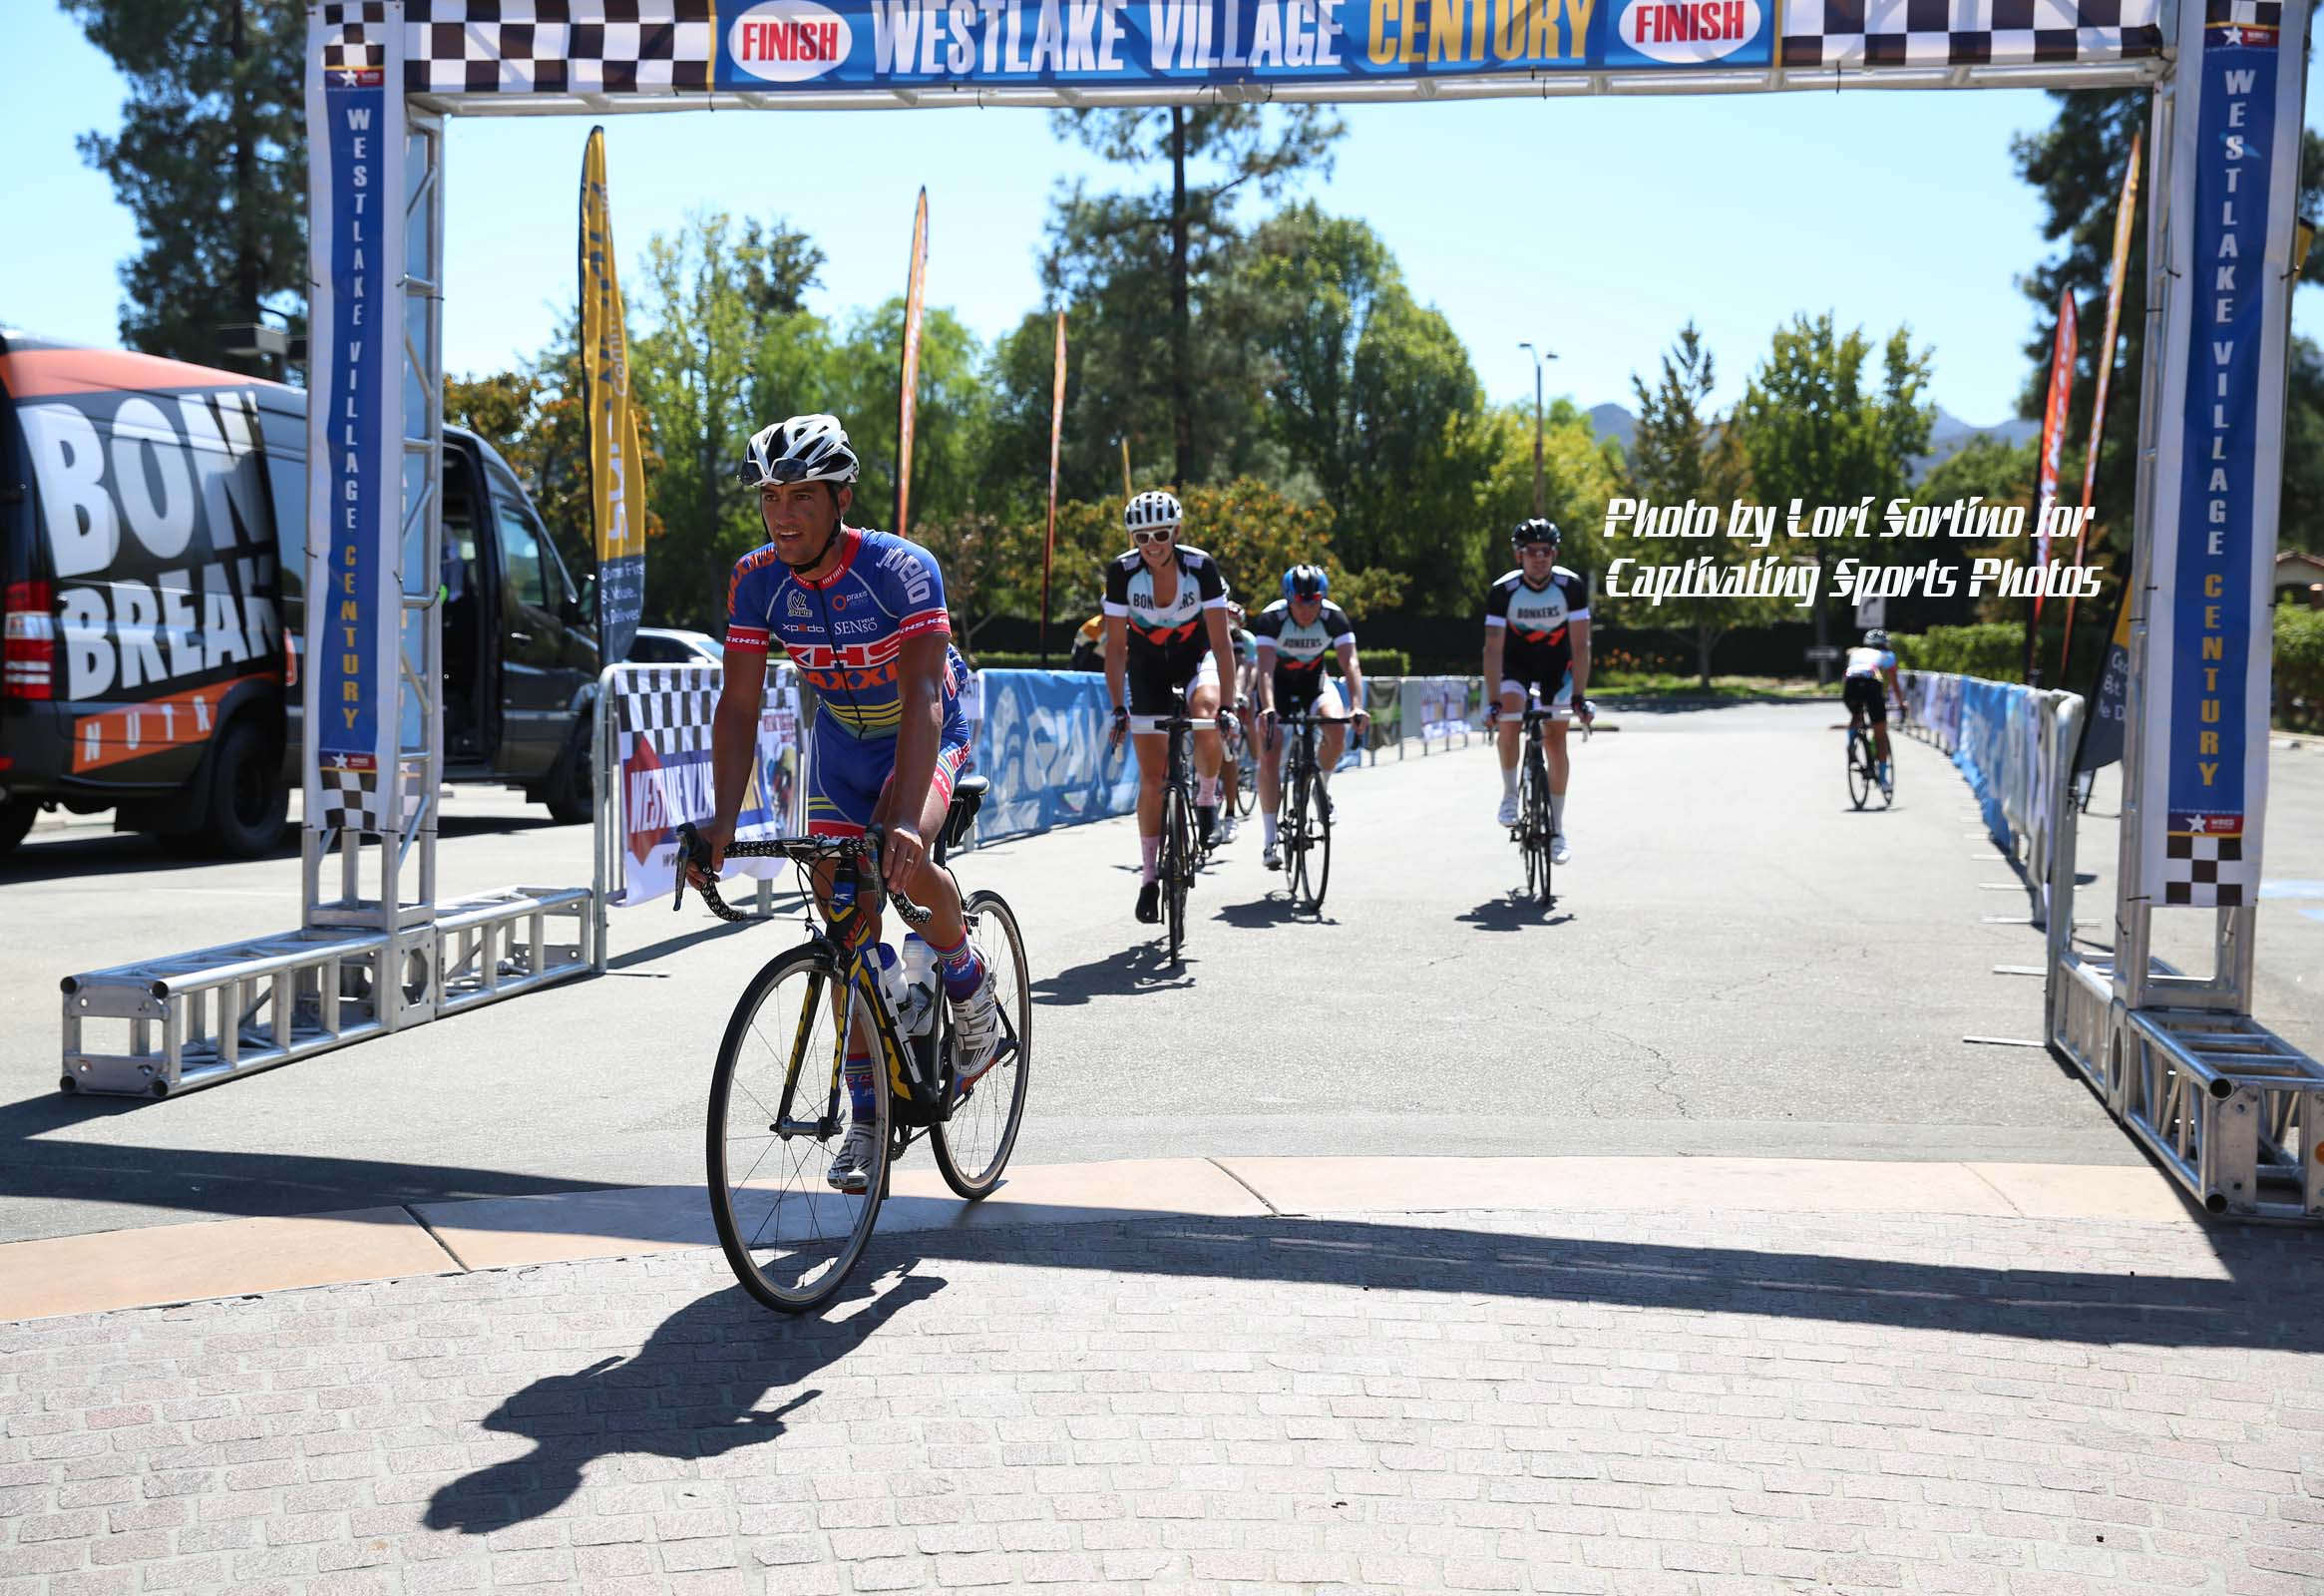 Westlake Village Century finish line